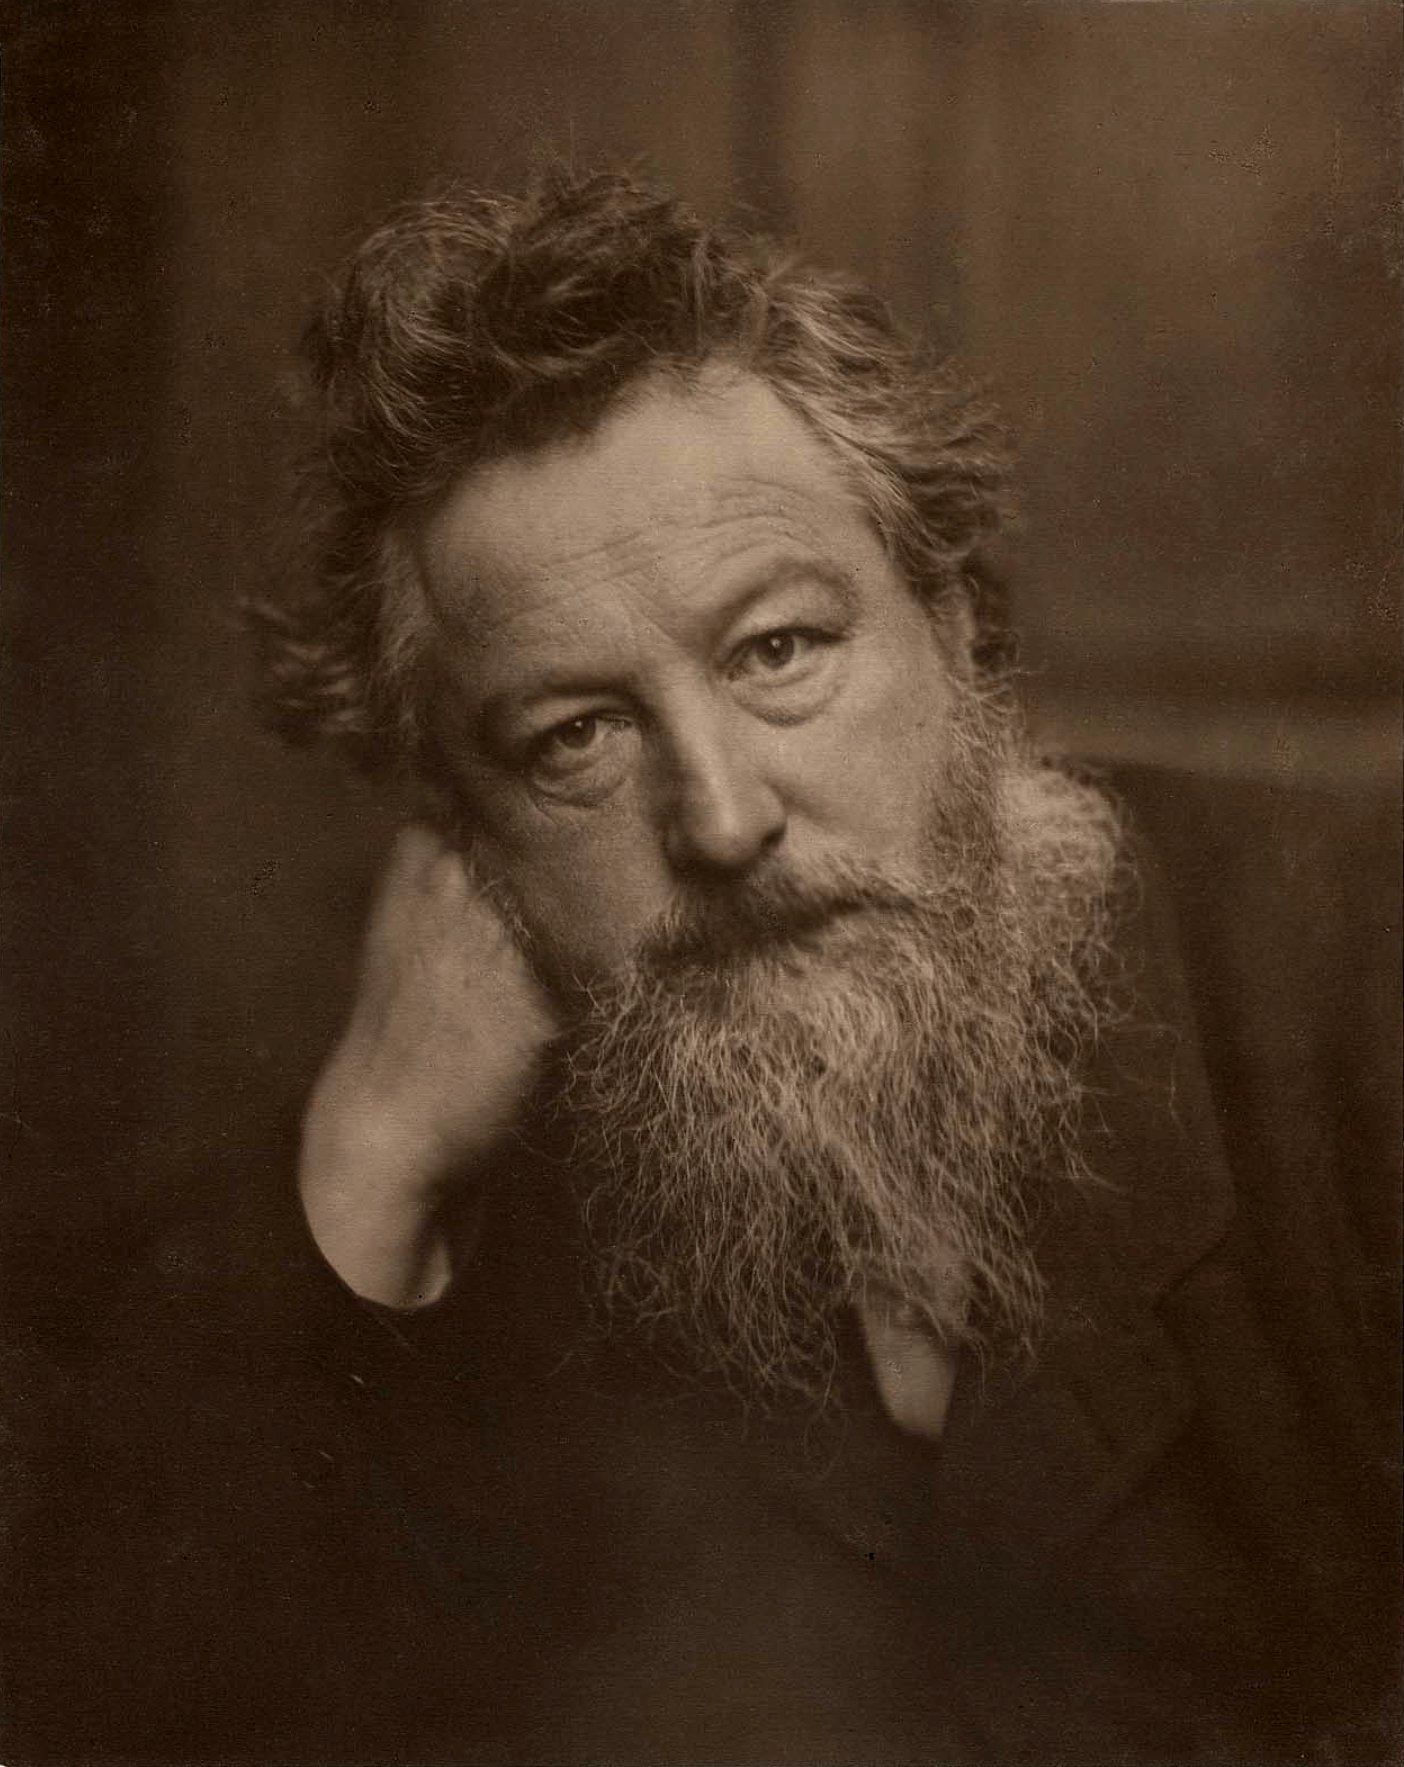 William Morris, born March 24, 1834, was an English textile designer, artist, and writer associated with the Arts and Crafts Movement.